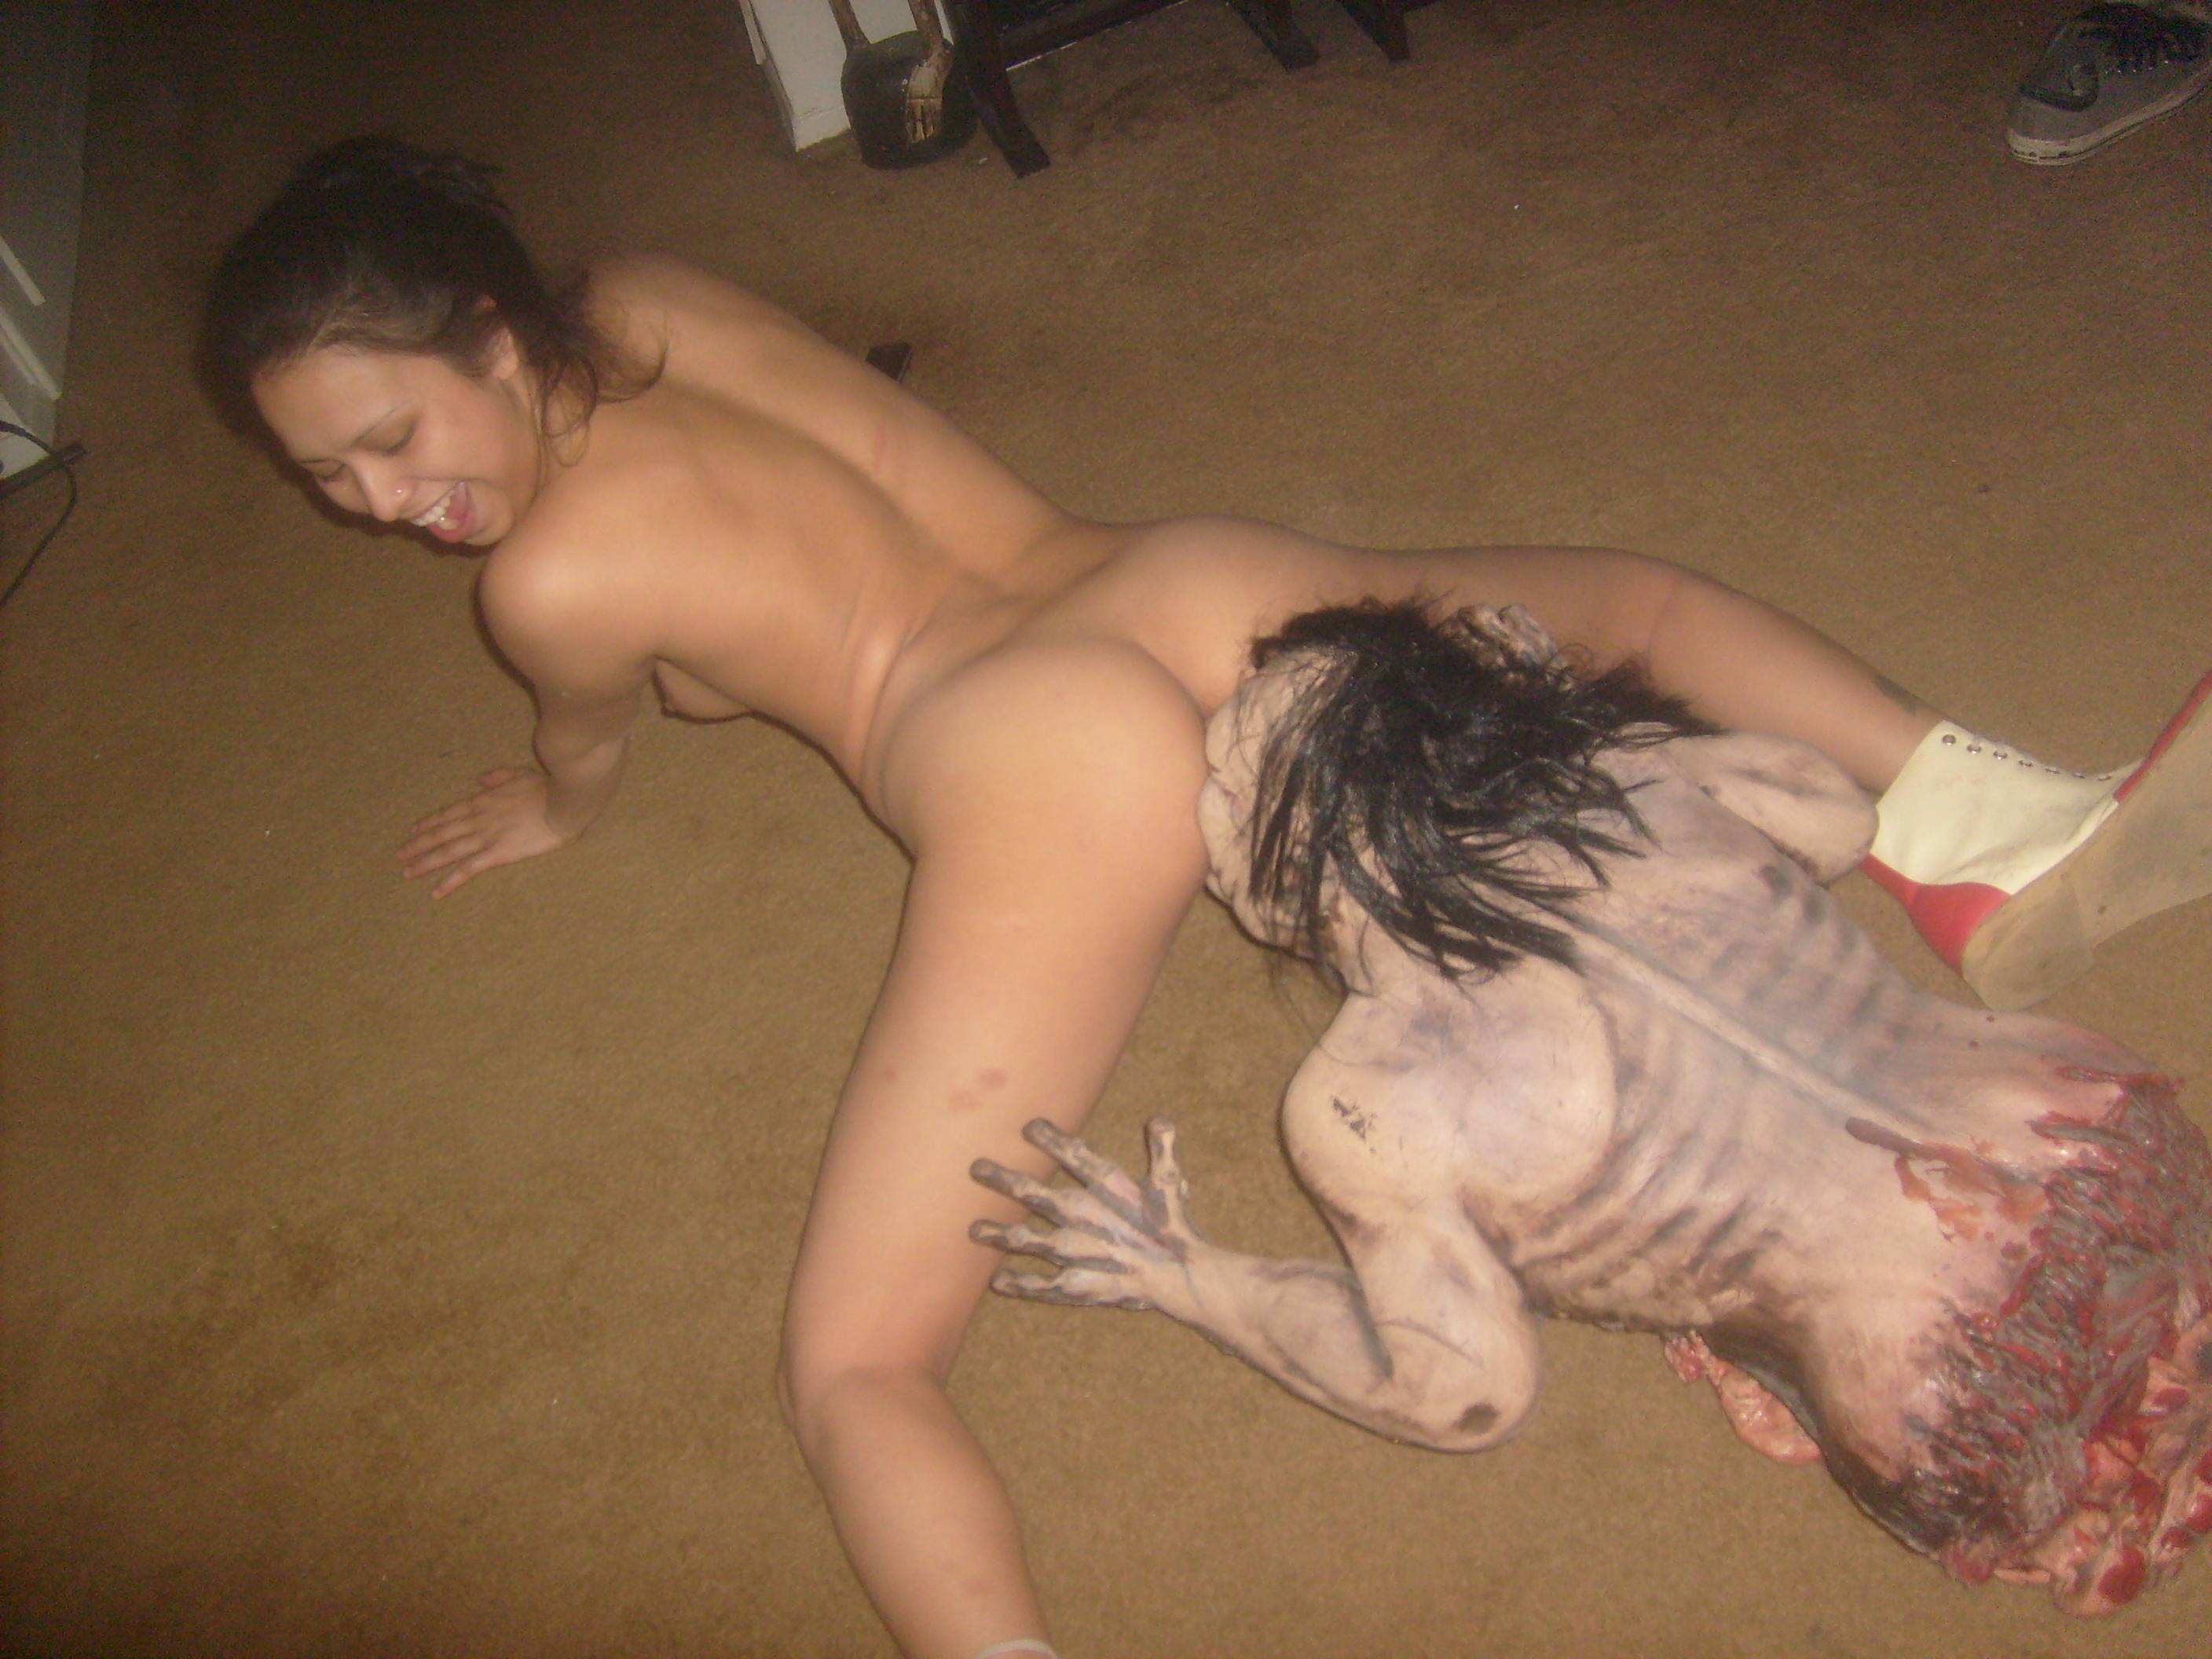 Zombie hot fucking nude erotic photo